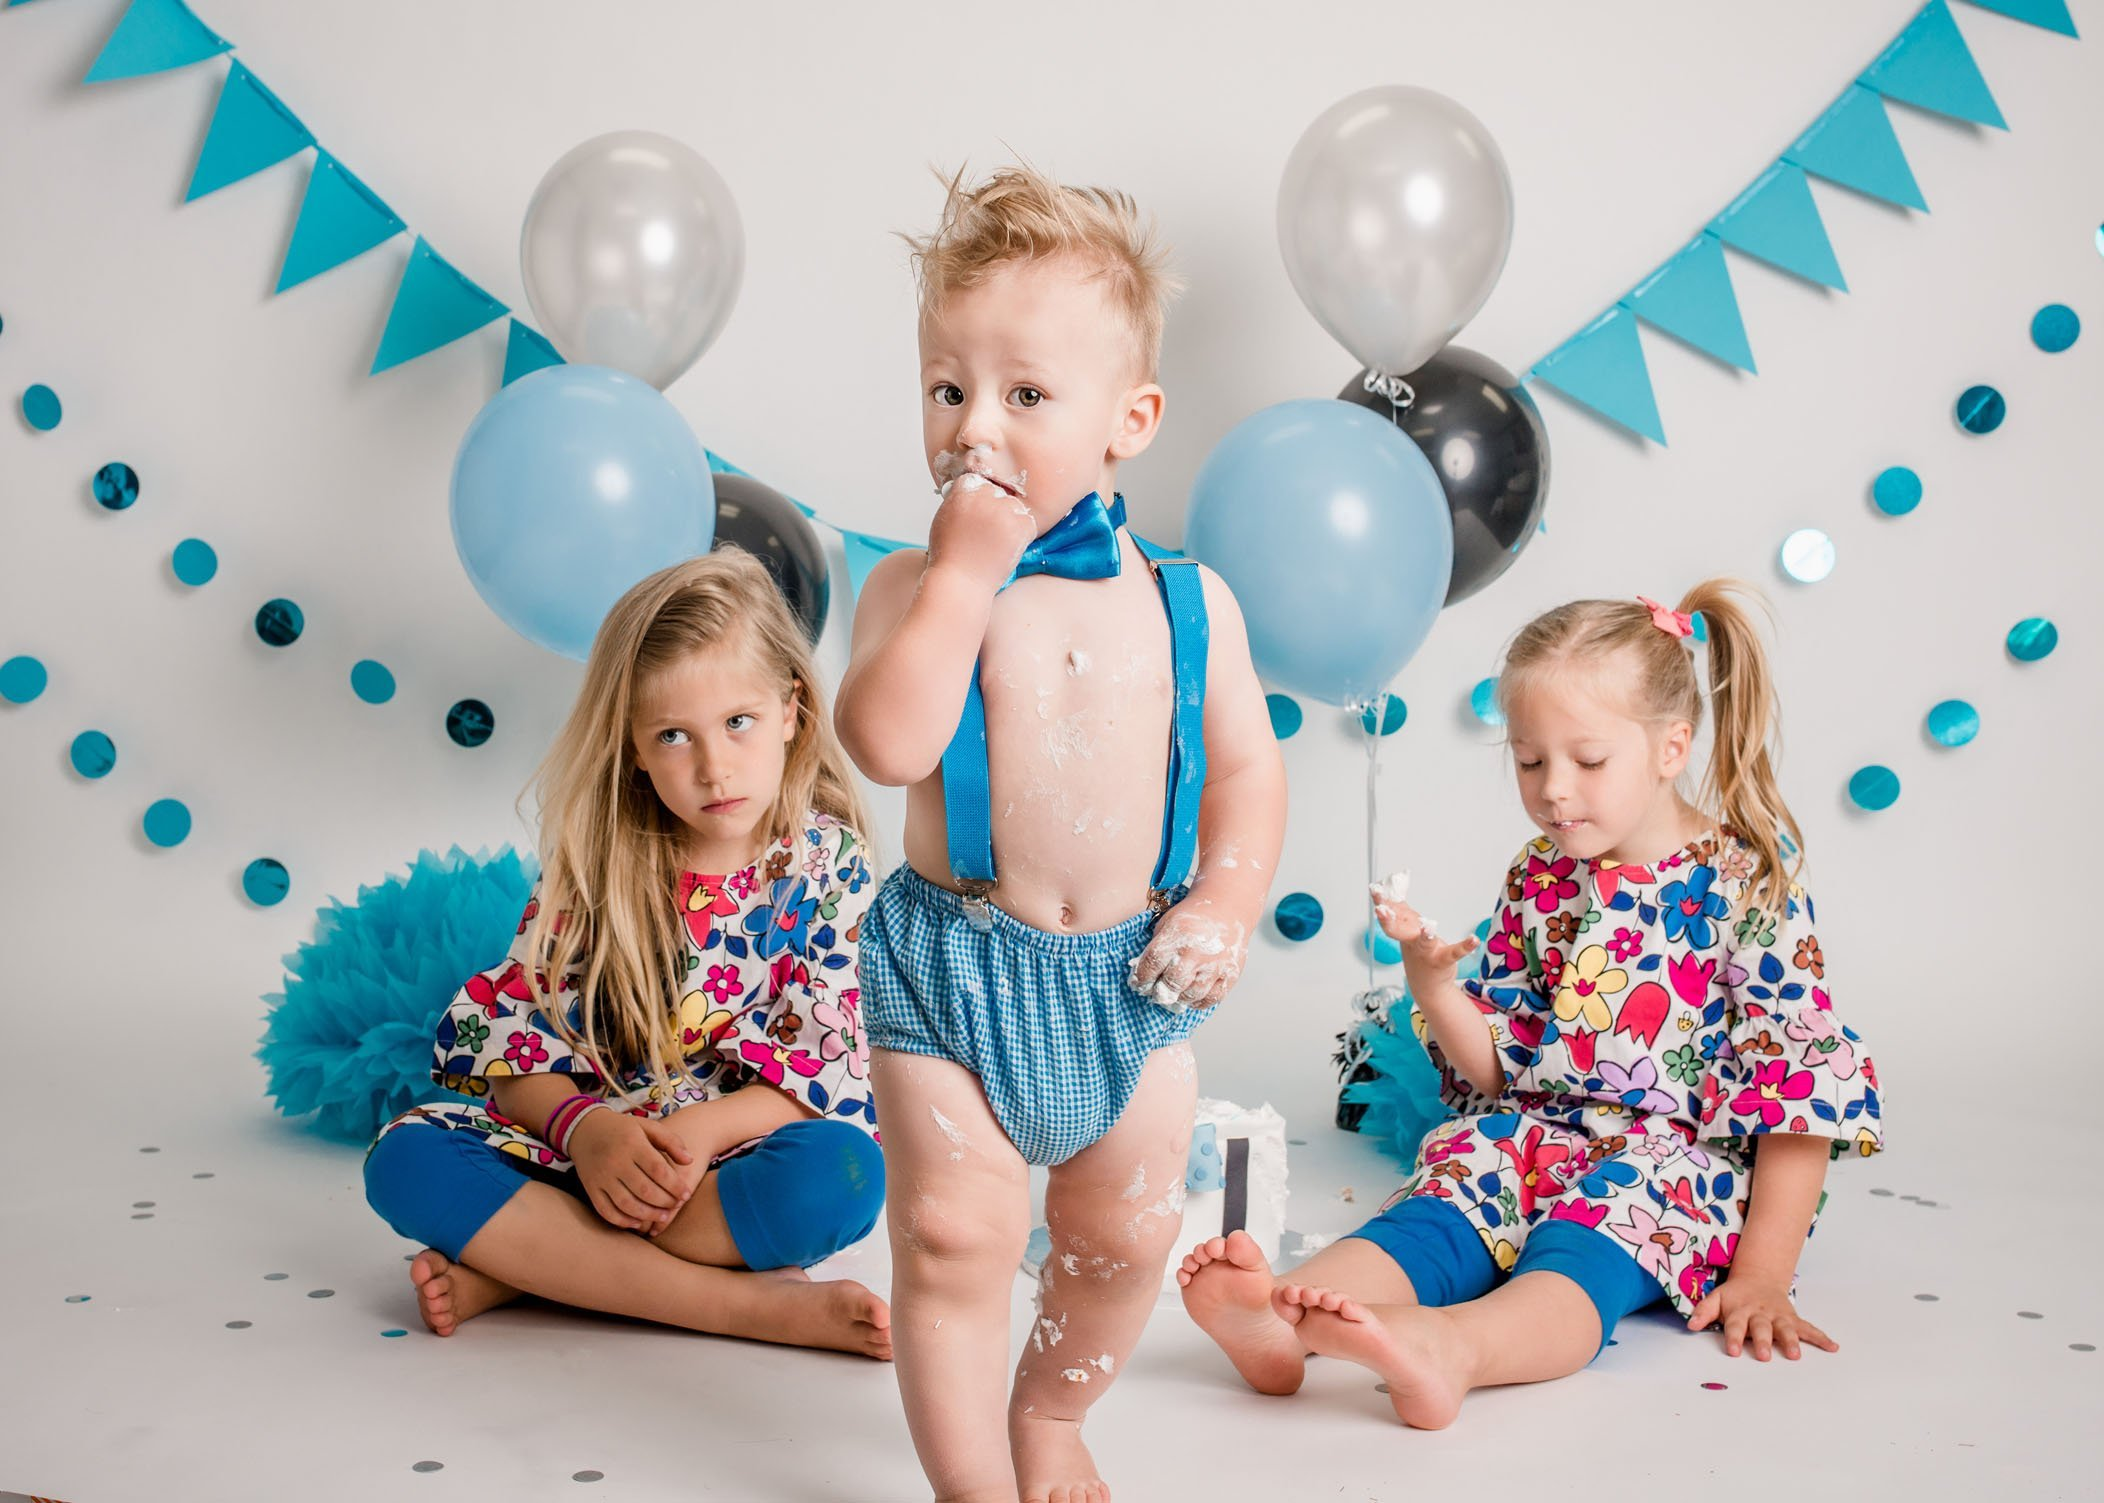 12 month old boy and his sisters at his cake smash session